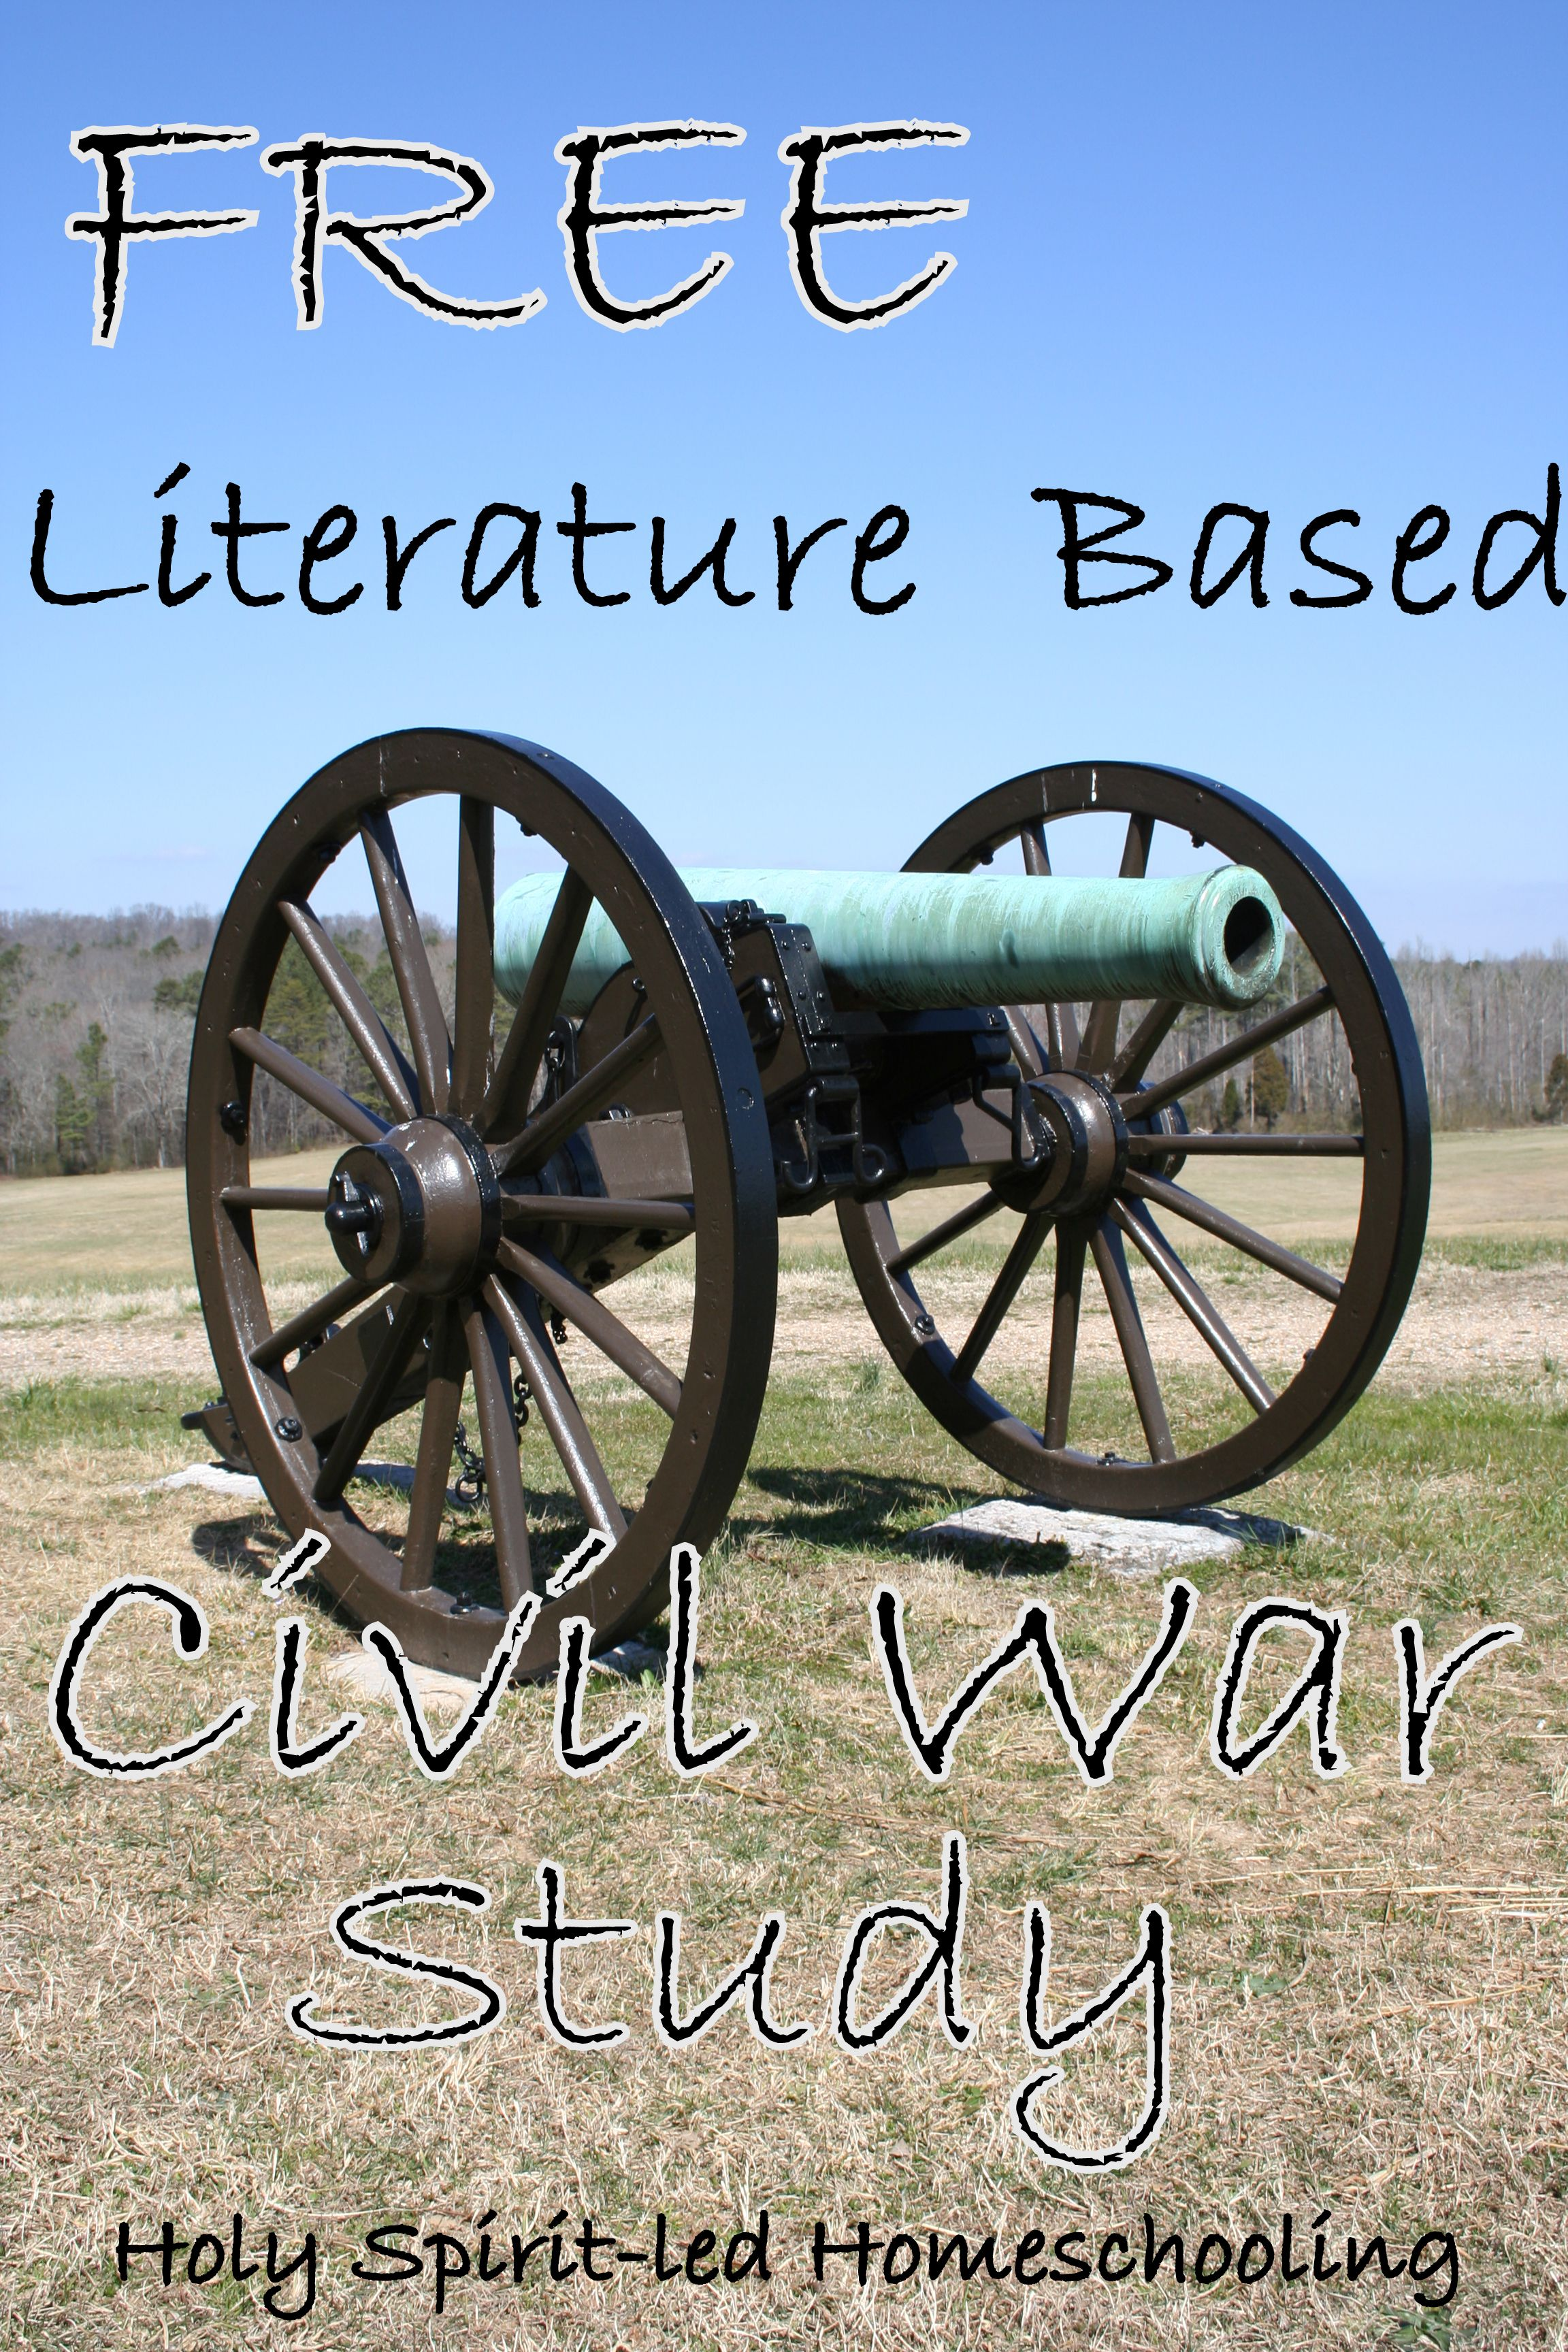 07 25 12 Free Literature Based Curriculum On The Civil War